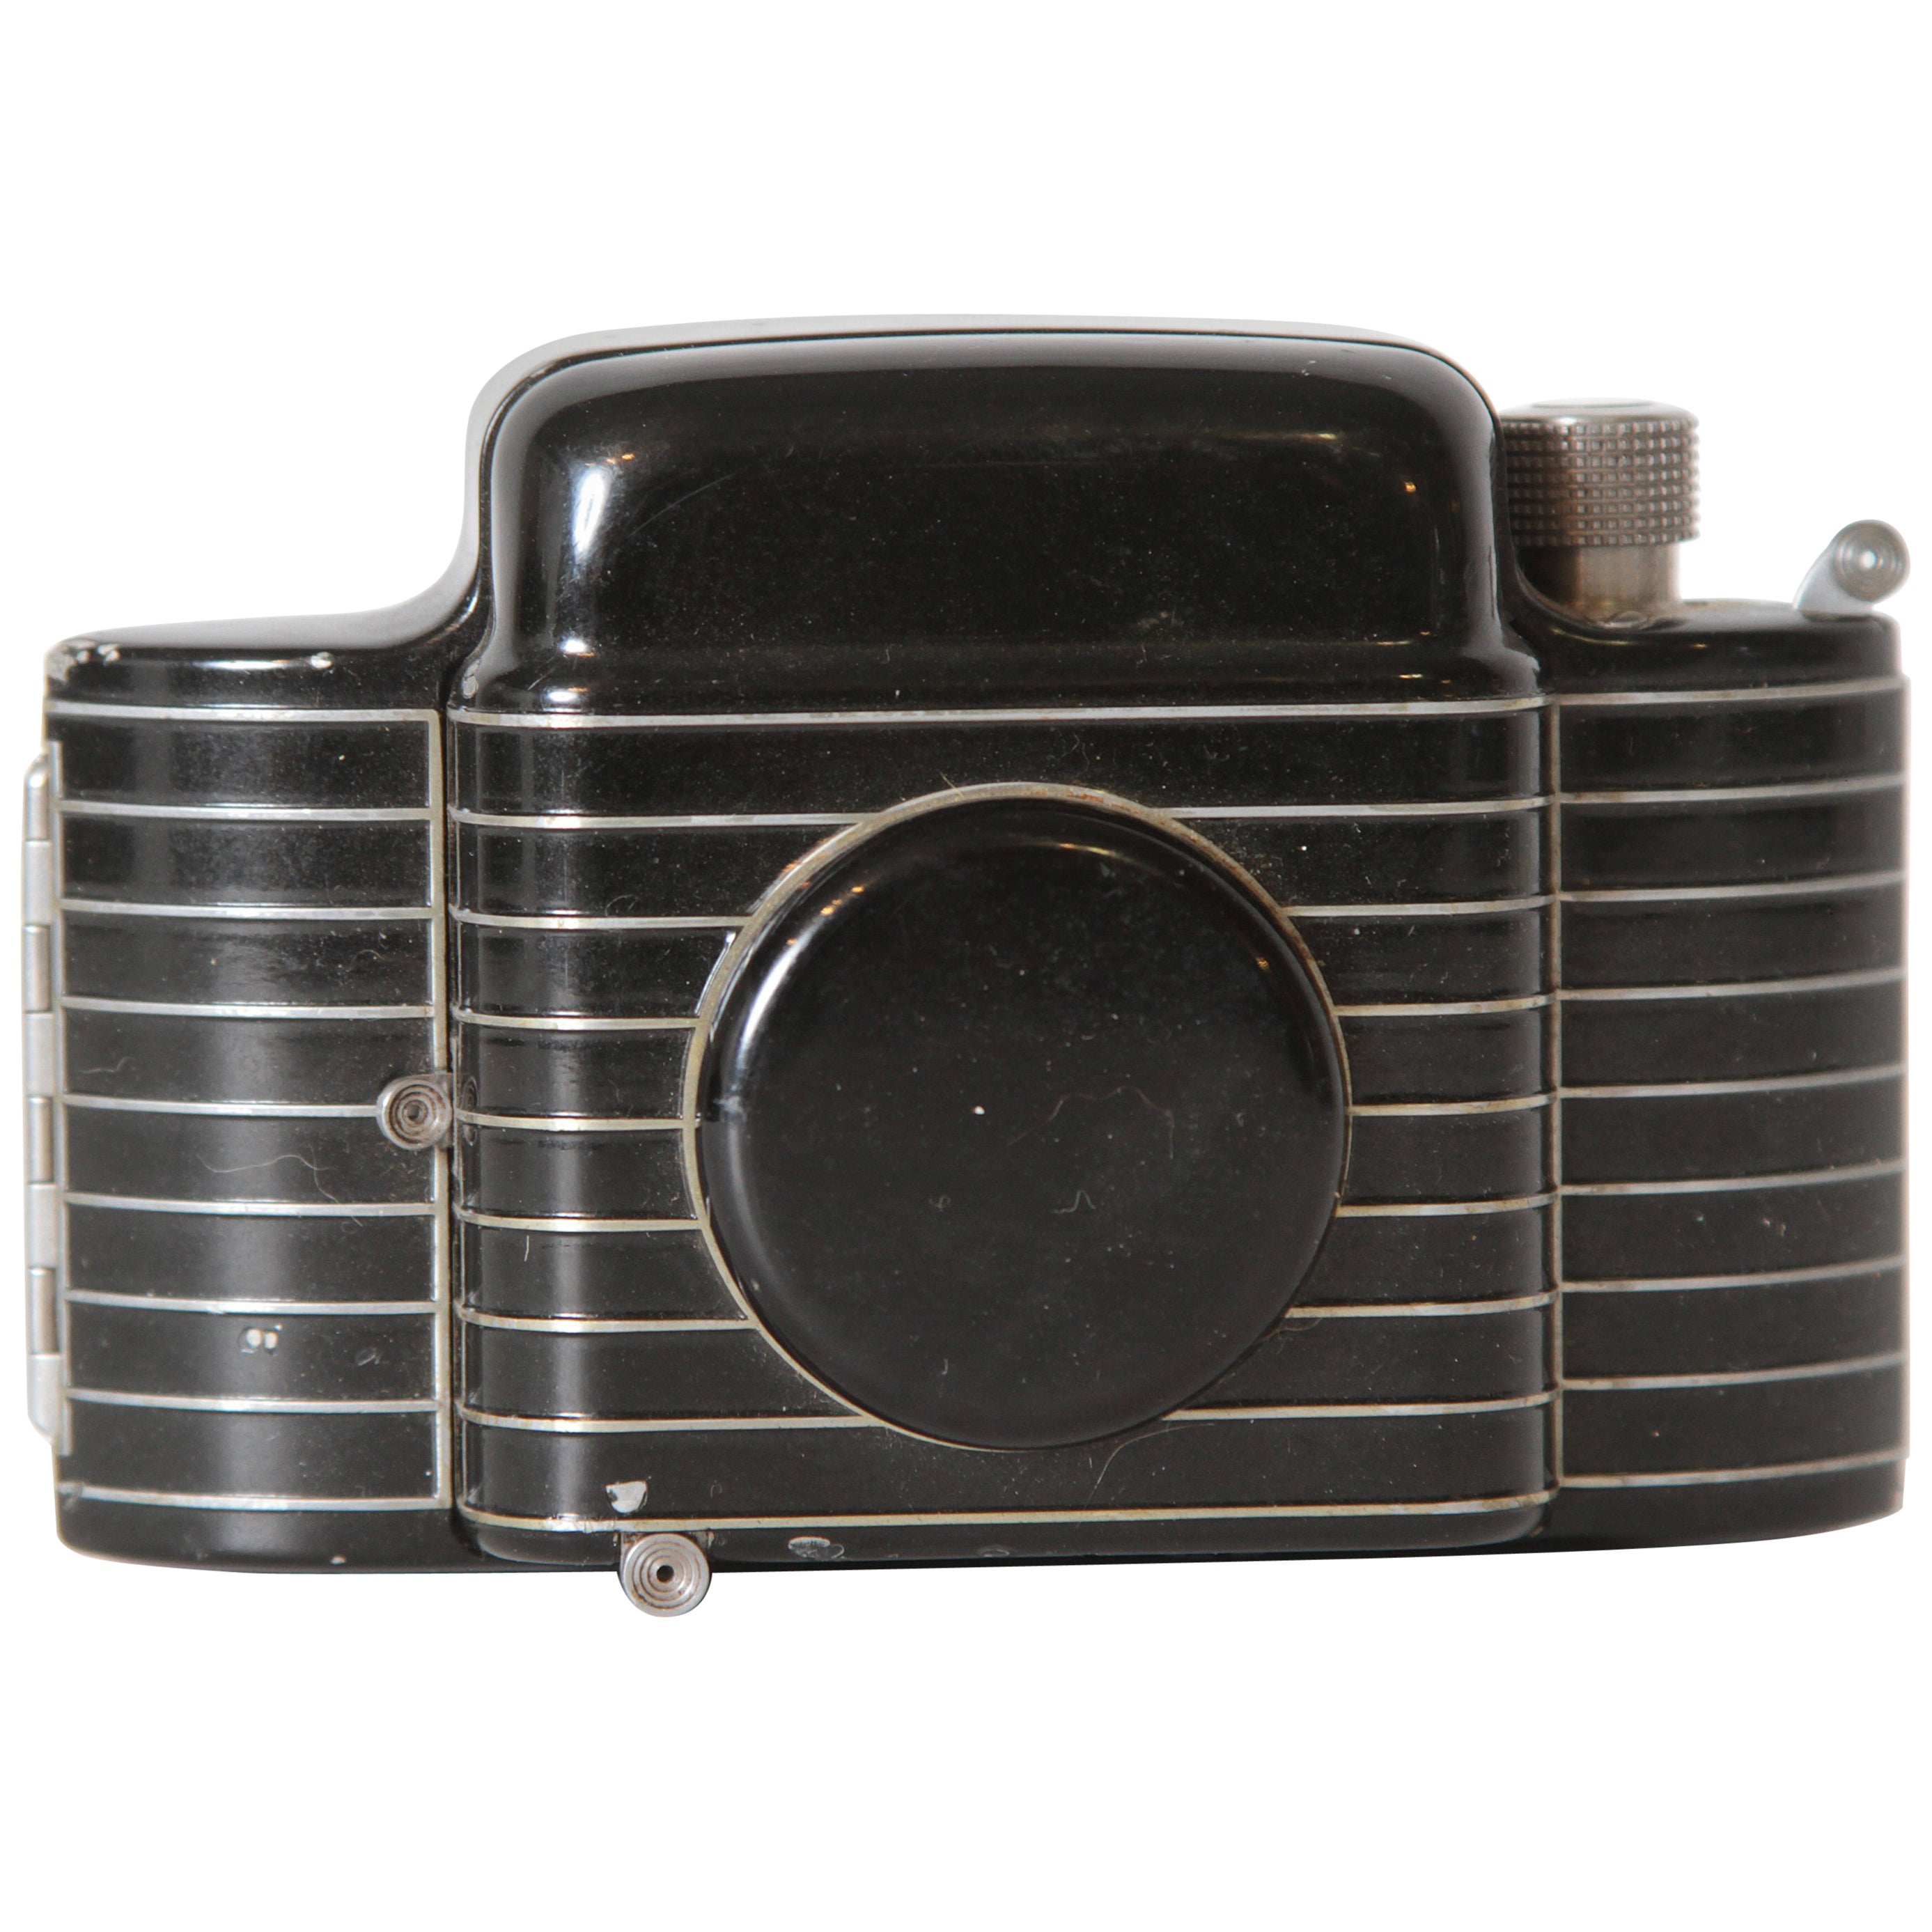 Machine Age Art Deco Walter Dorwin Teague Kodak Bantam Special Camera